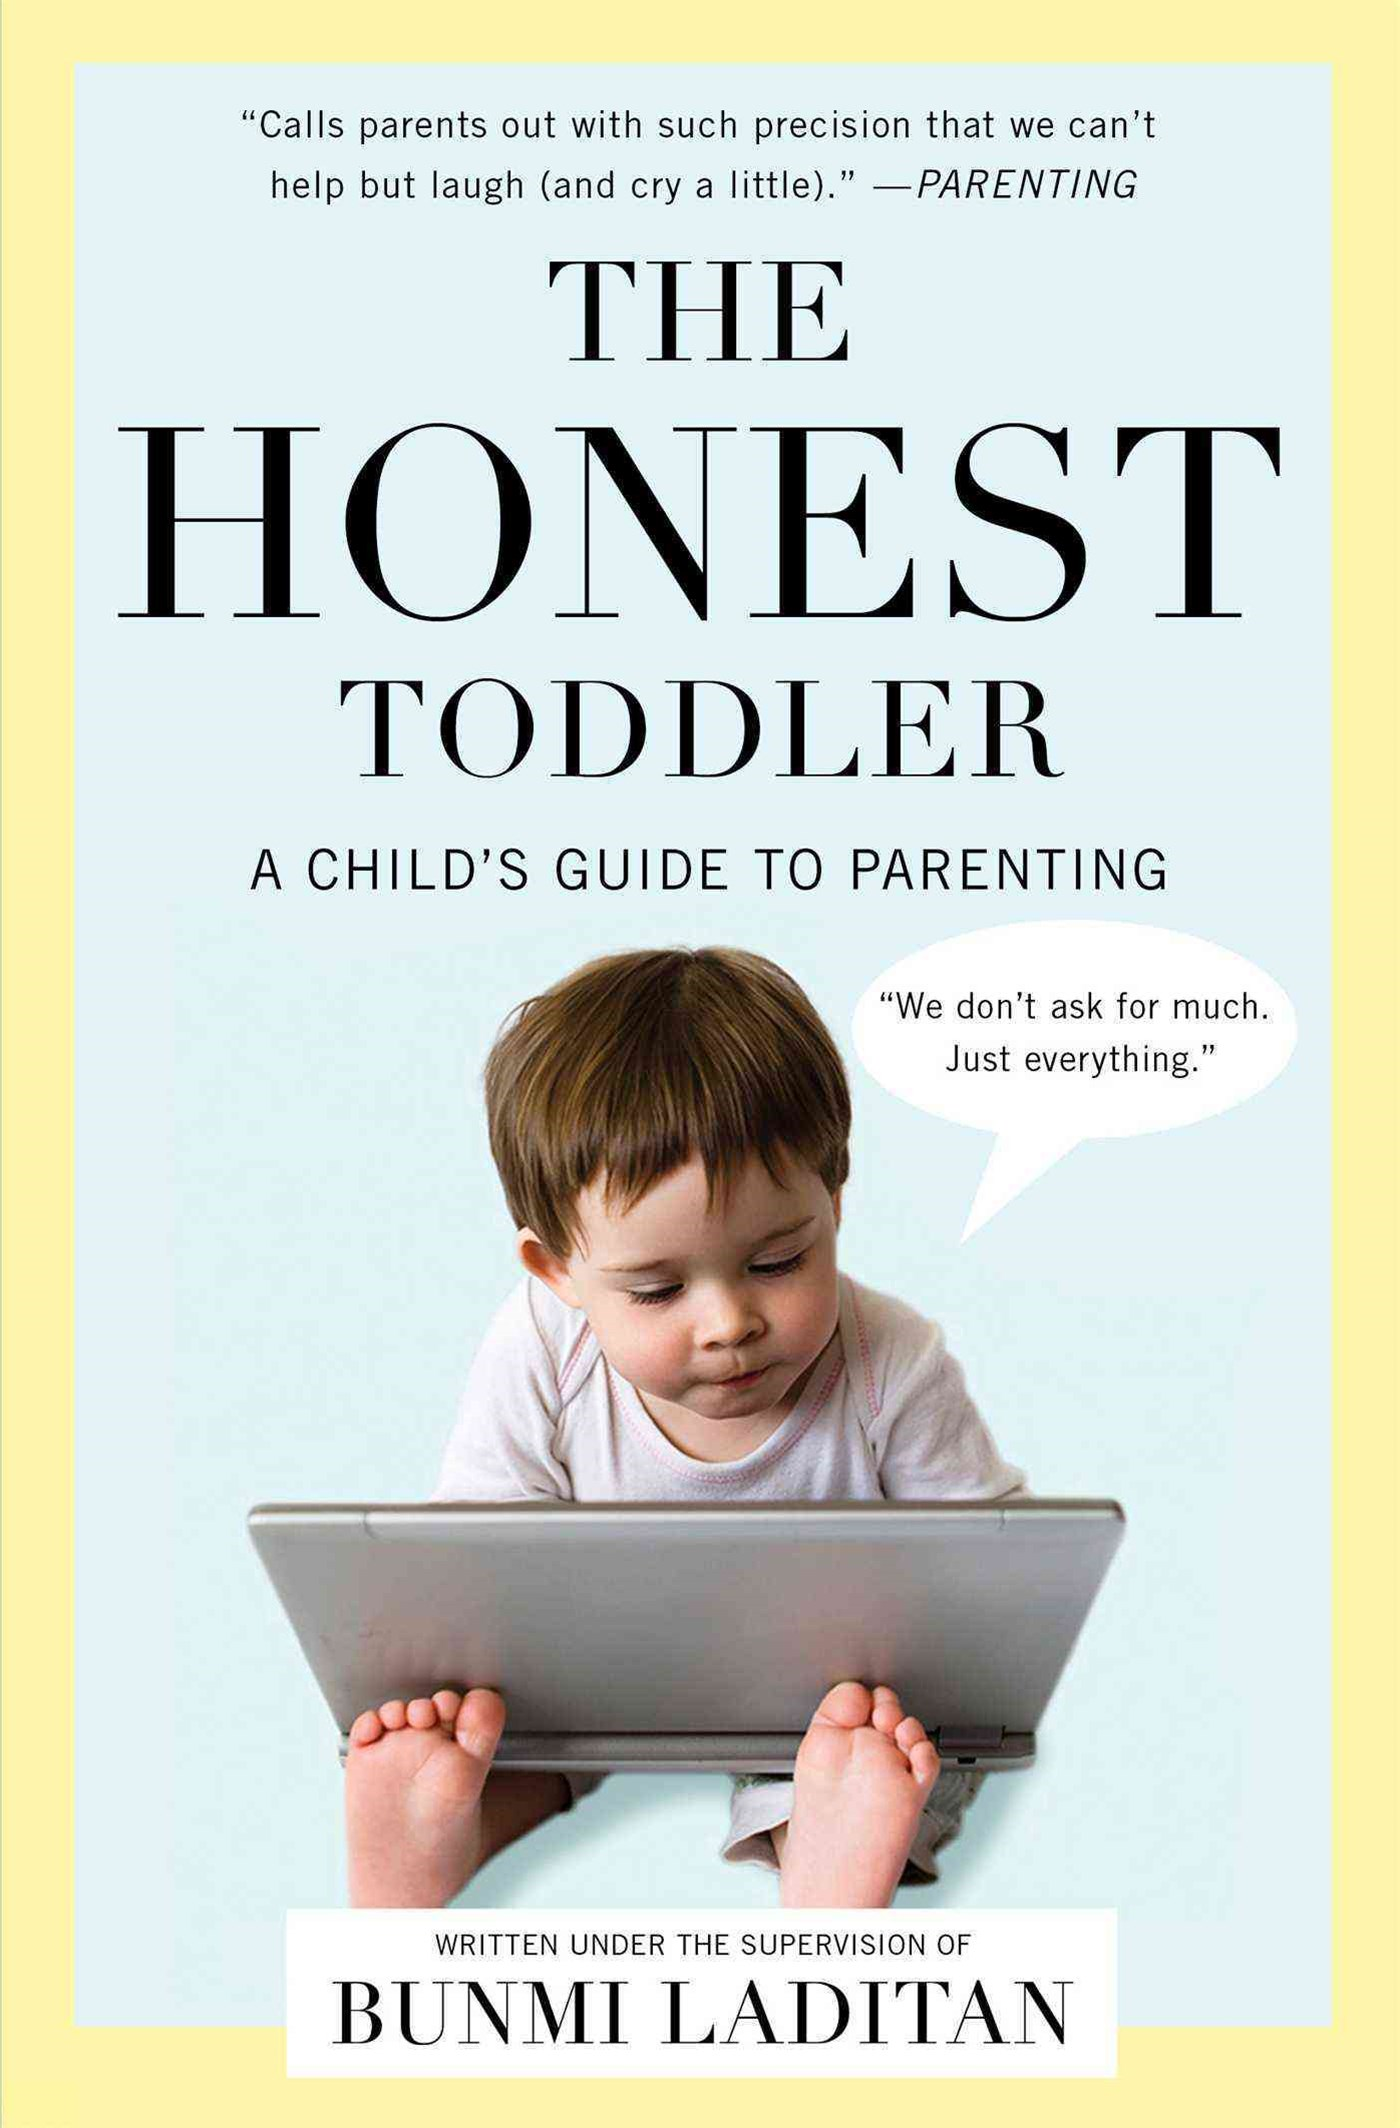 The Honest Toddler